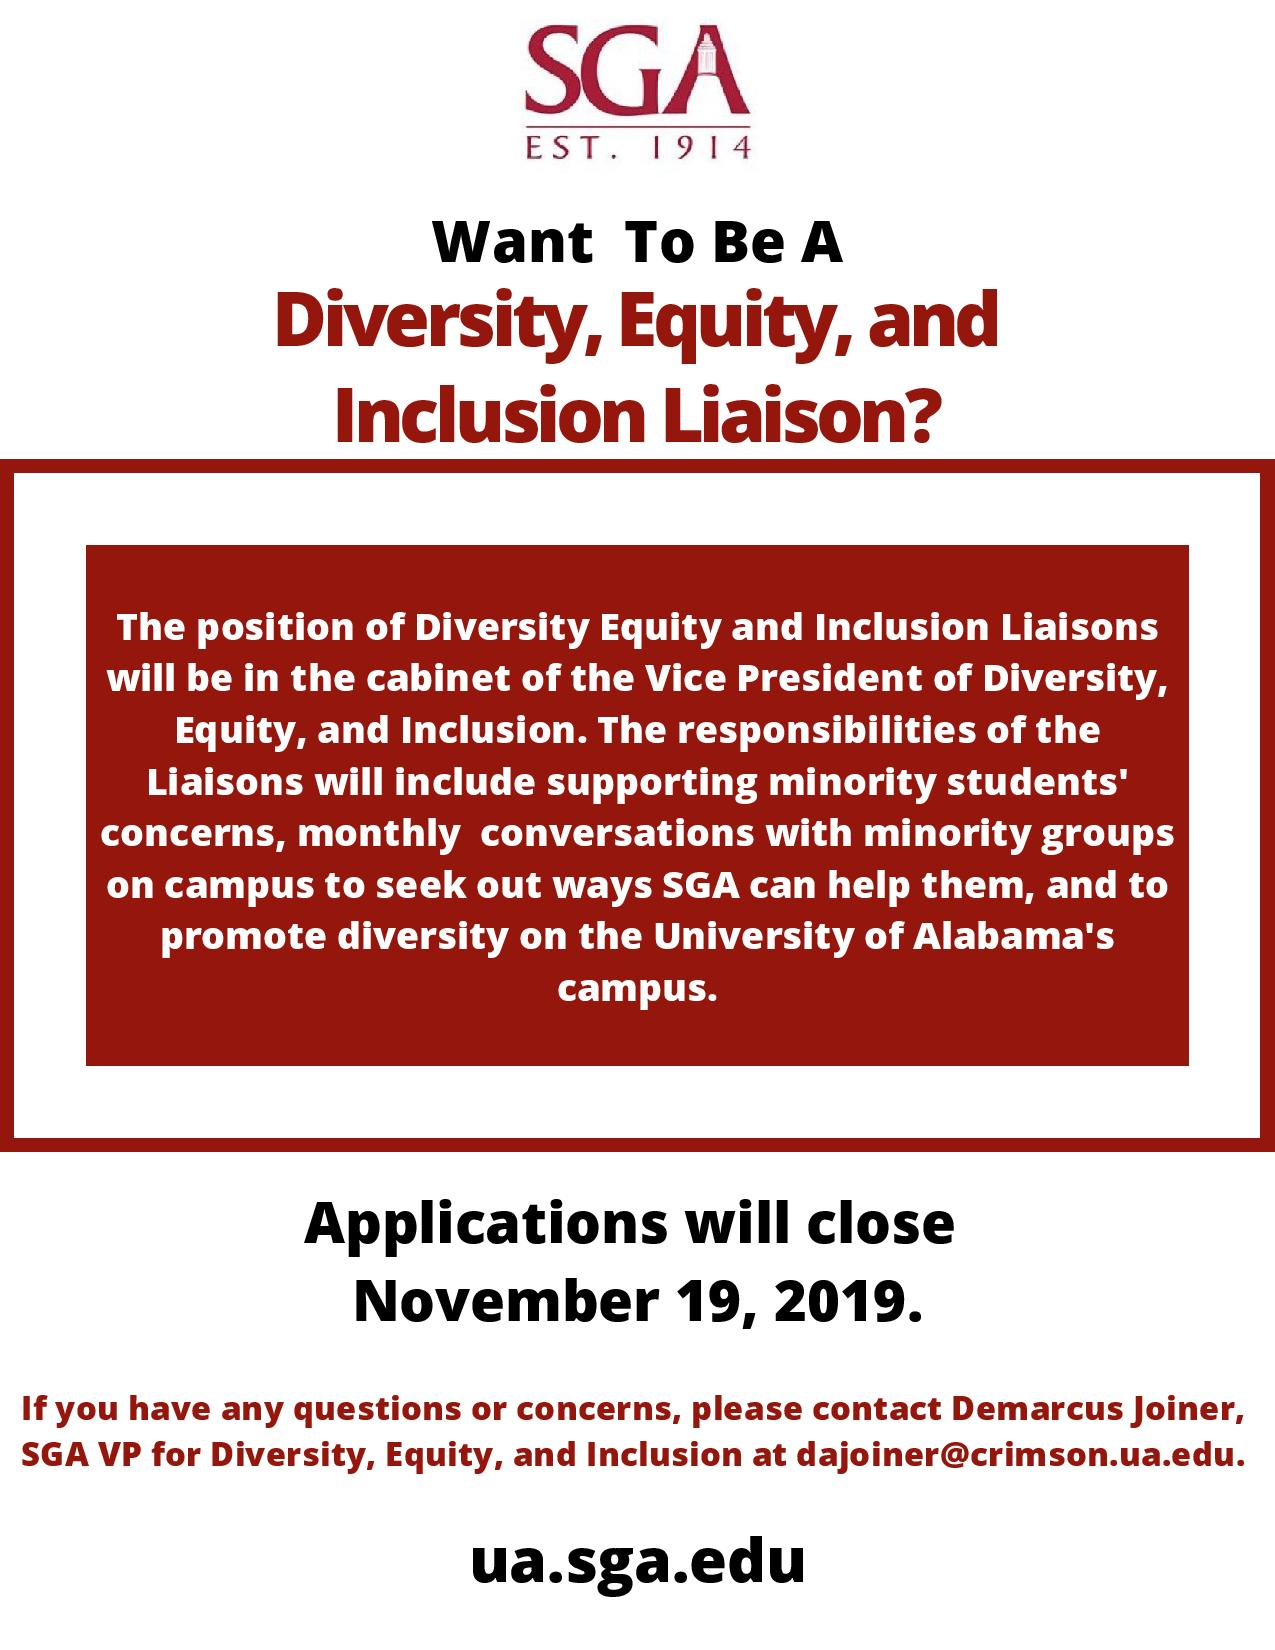 Diversity, Equity, and Inclusion Liaison positions.